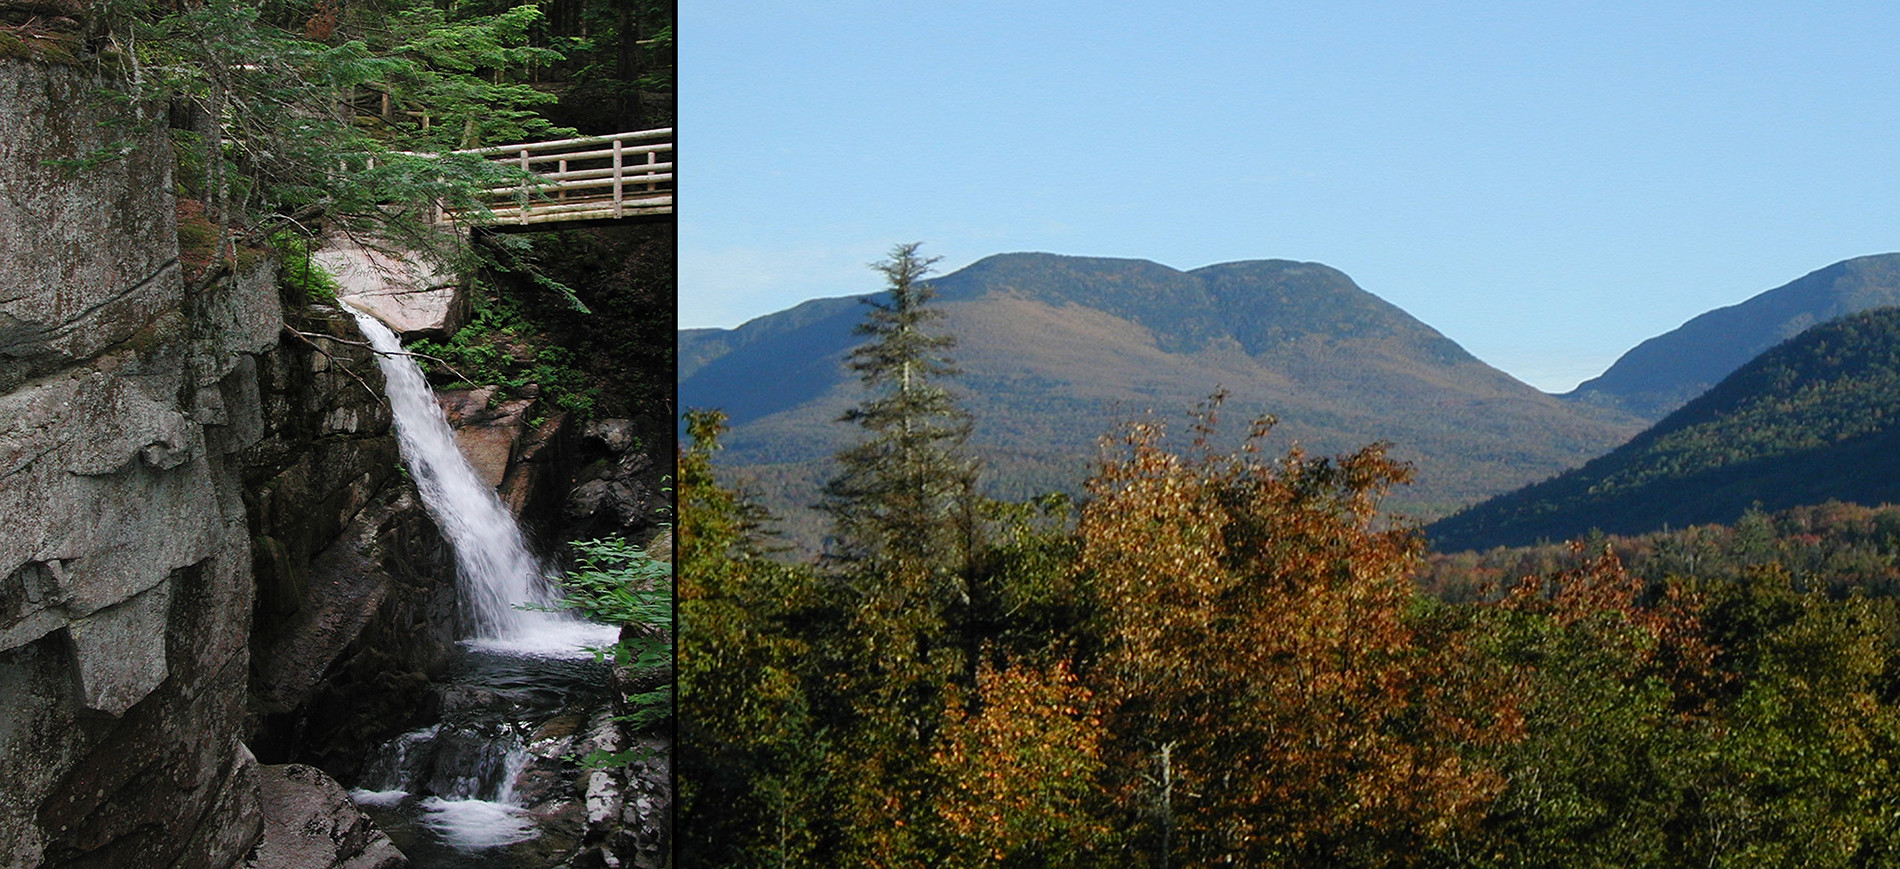 Sabbaday Falls waterfall on left with wood walkway, view of White Mountains from Crawford Notch